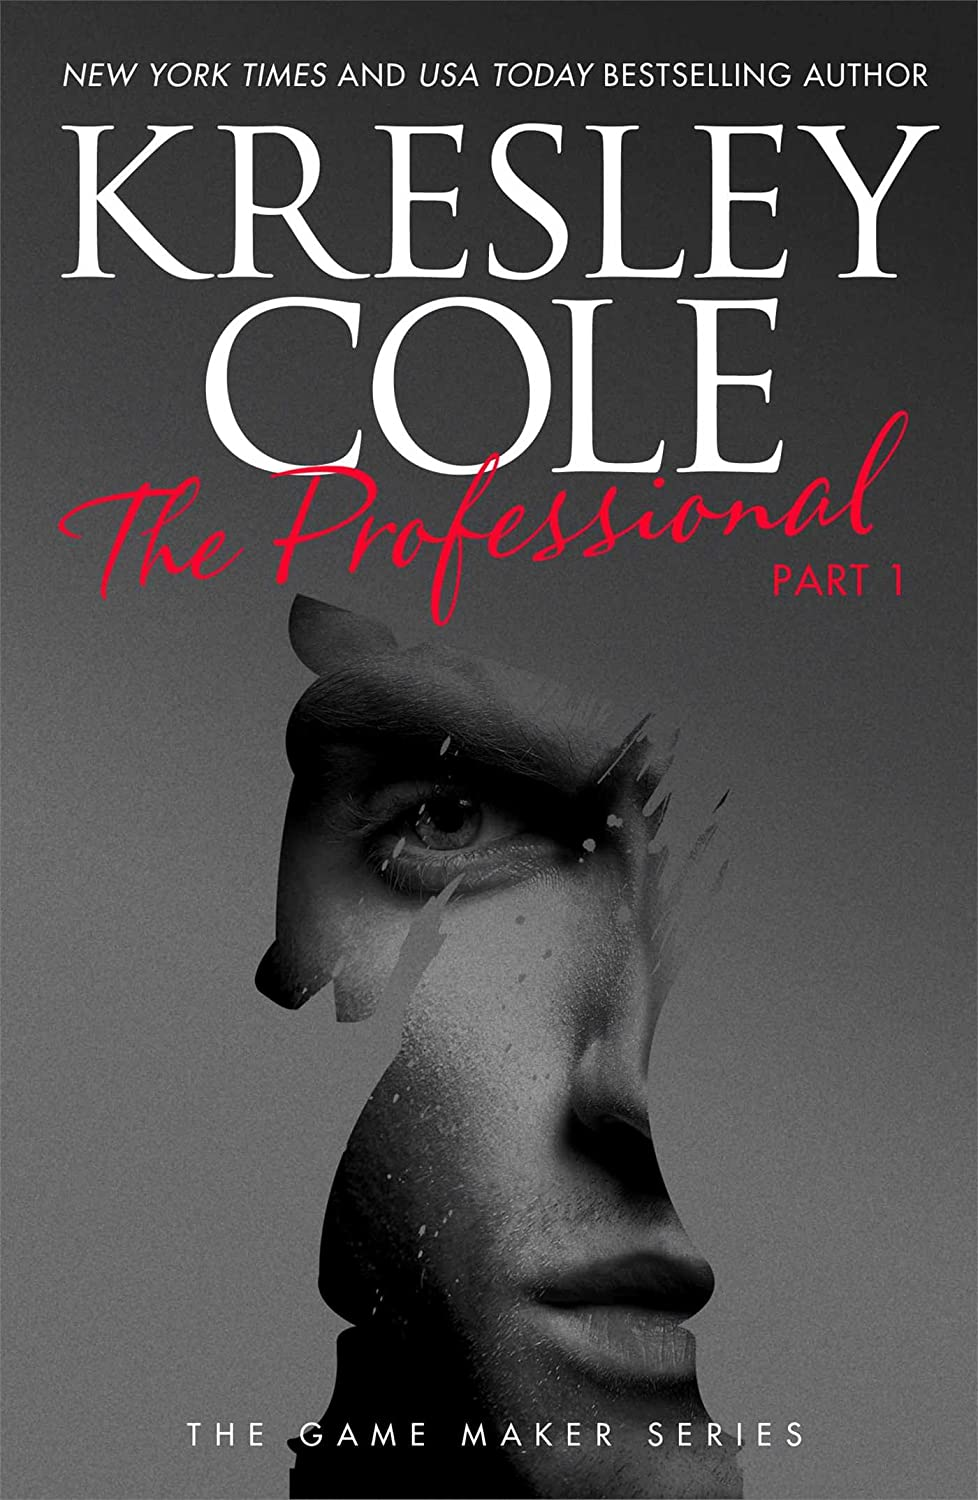 The Professional Part 1 (The Game Maker Series) - Kresley Cole